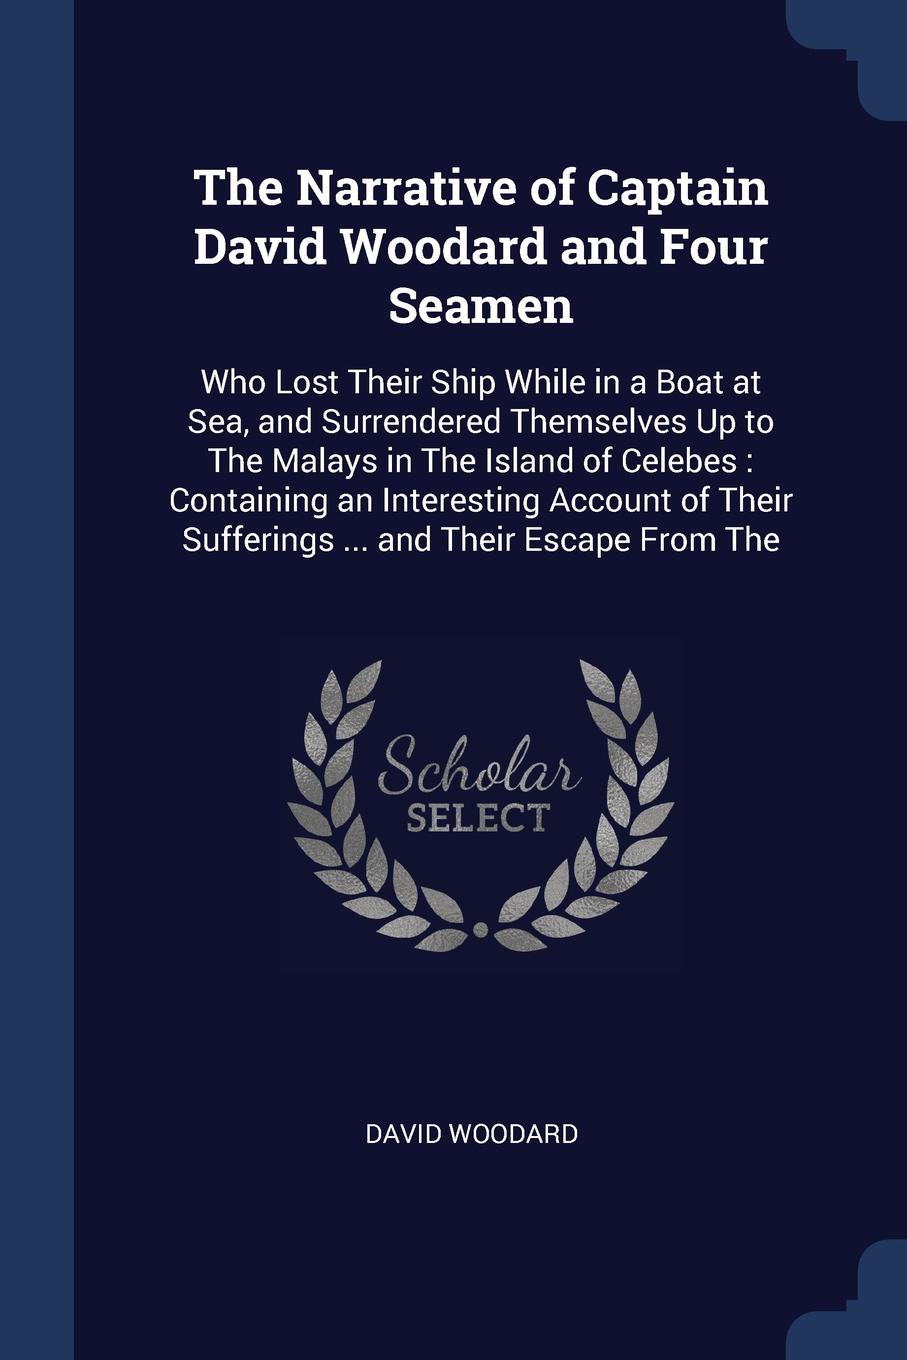 Фото - David Woodard The Narrative of Captain David Woodard and Four Seamen. Who Lost Their Ship While in a Boat at Sea, and Surrendered Themselves Up to The Malays in The Island of Celebes : Containing an Interesting Account of Their Sufferings ... and Their Escape F... david woodard the narrative of captain david woodard and four seamen who lost their ship while in a boat at sea and surrendered themselves up to the malays in the sufferings and their escape from the